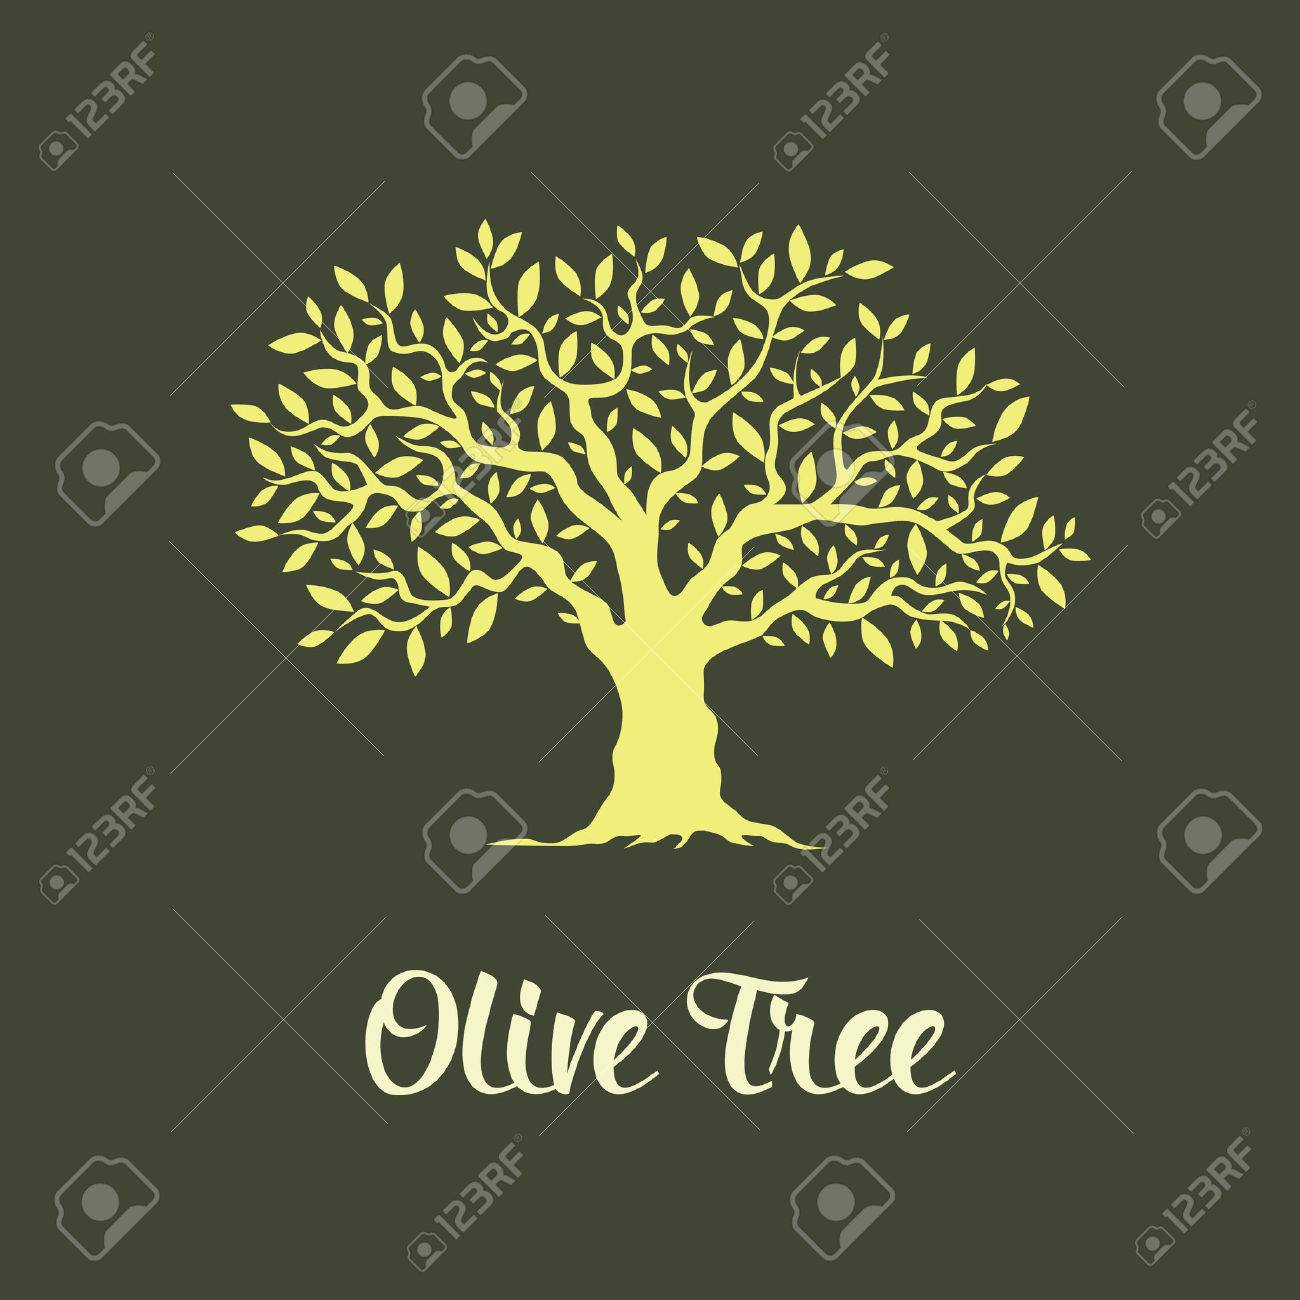 Beautiful magnificent olive tree isolated on green background. Premium quality logo concept vector illustration. - 53302732